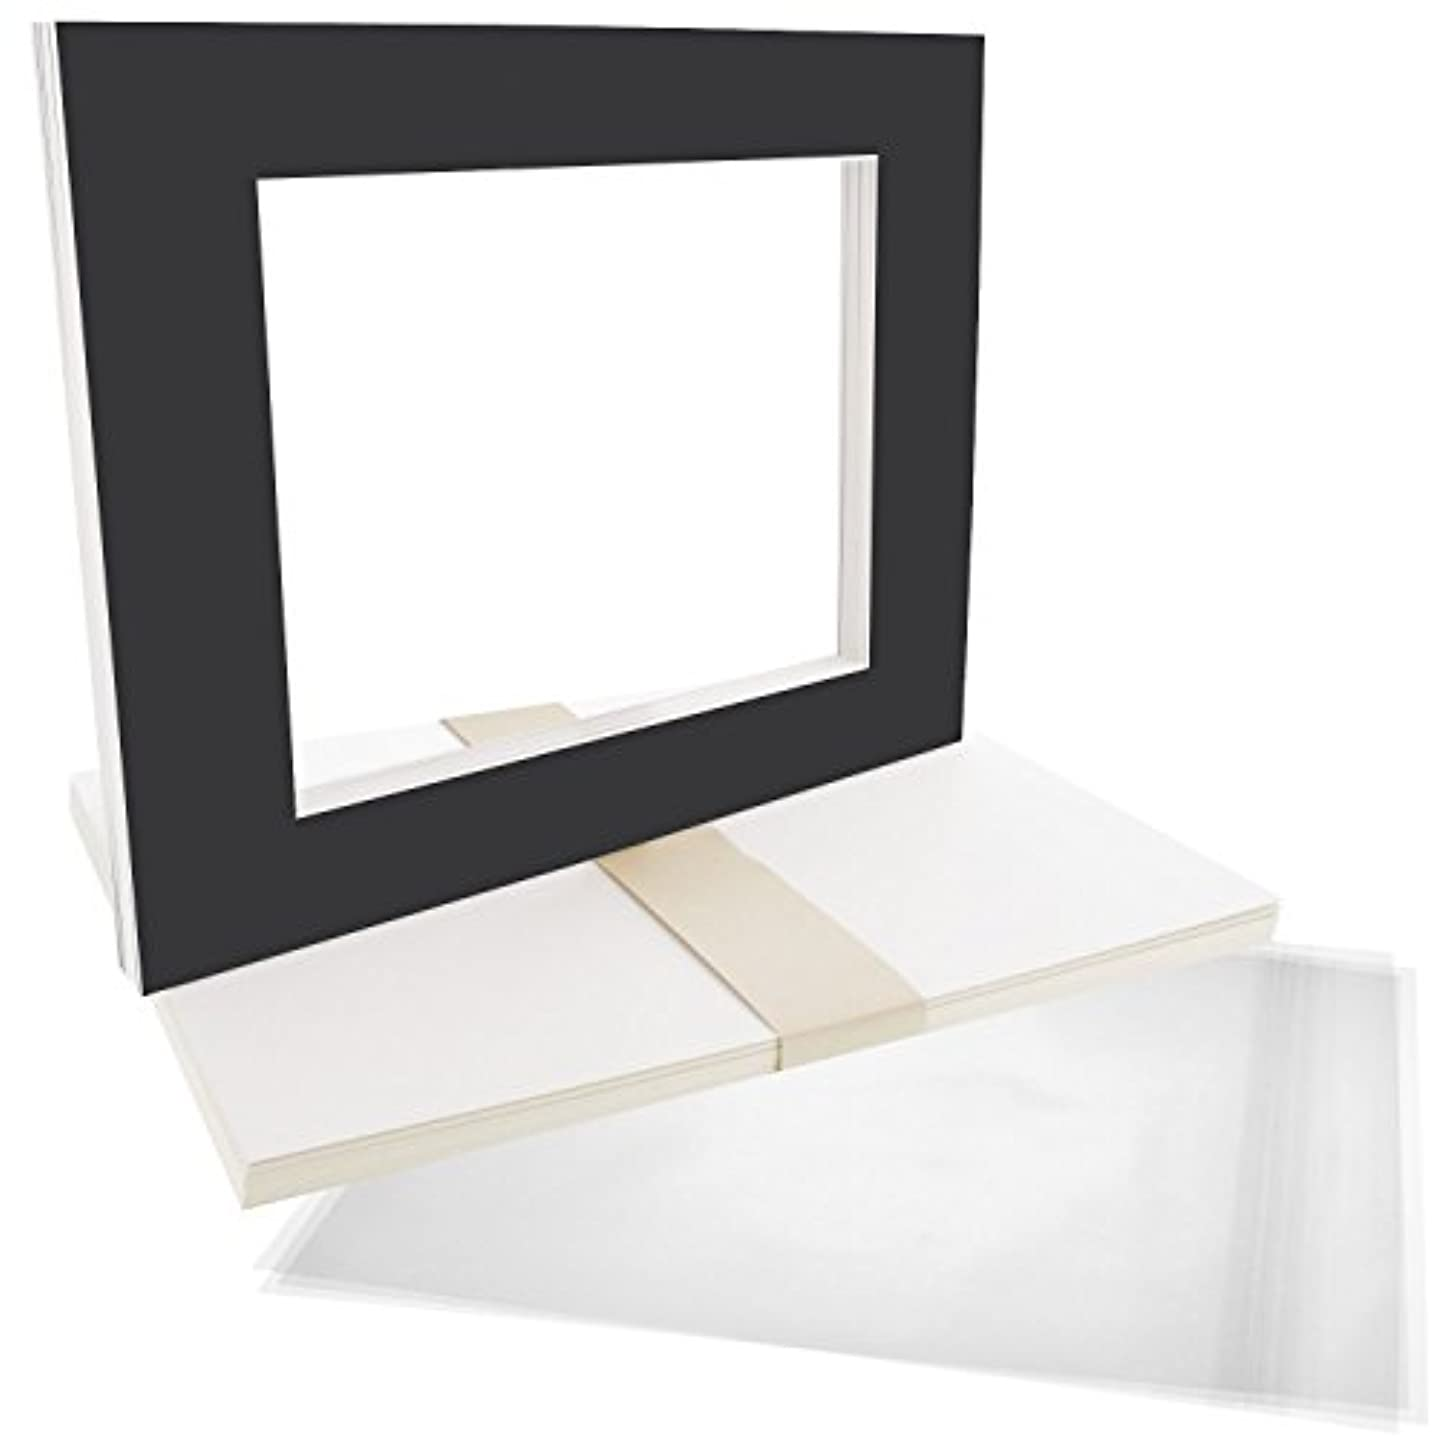 US Art Supply Art Mats Acid-Free Pre-Cut 16x20 Black Picture Mat Matte Sets. Includes a Pack of 10 White Core Bevel Cut Mattes for 11x14 Photos, Pack of 10 Backers & 10 Clear Sleeve Bags